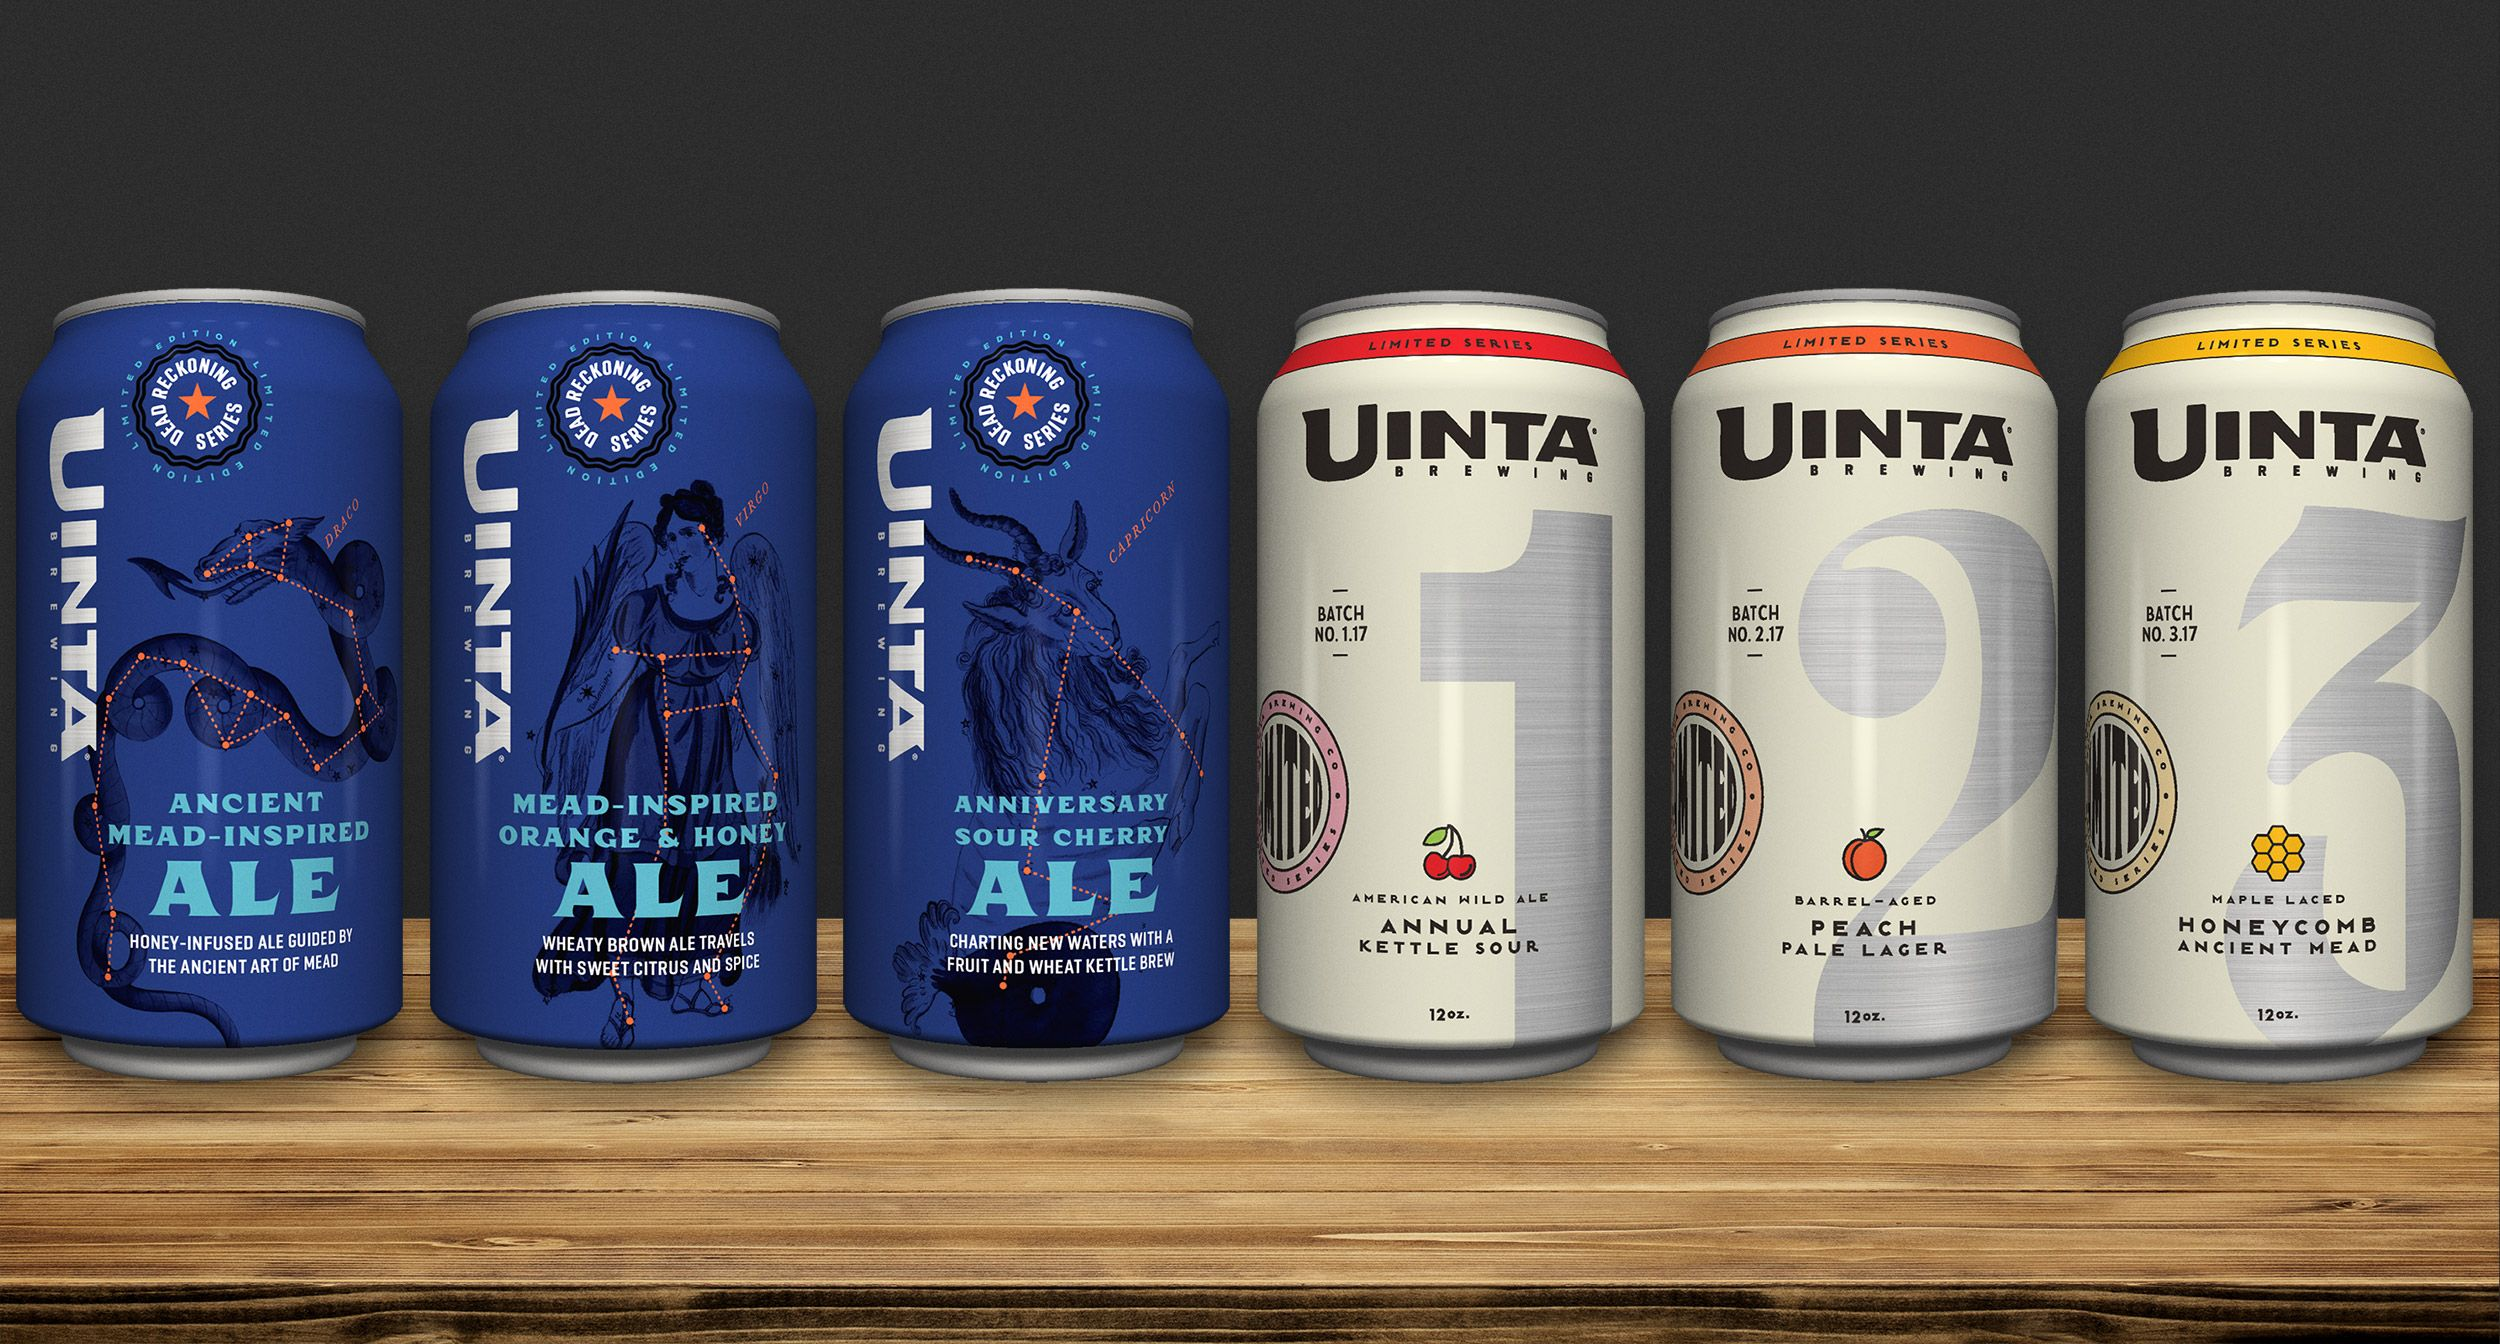 Artboard for two themed series beers package designs